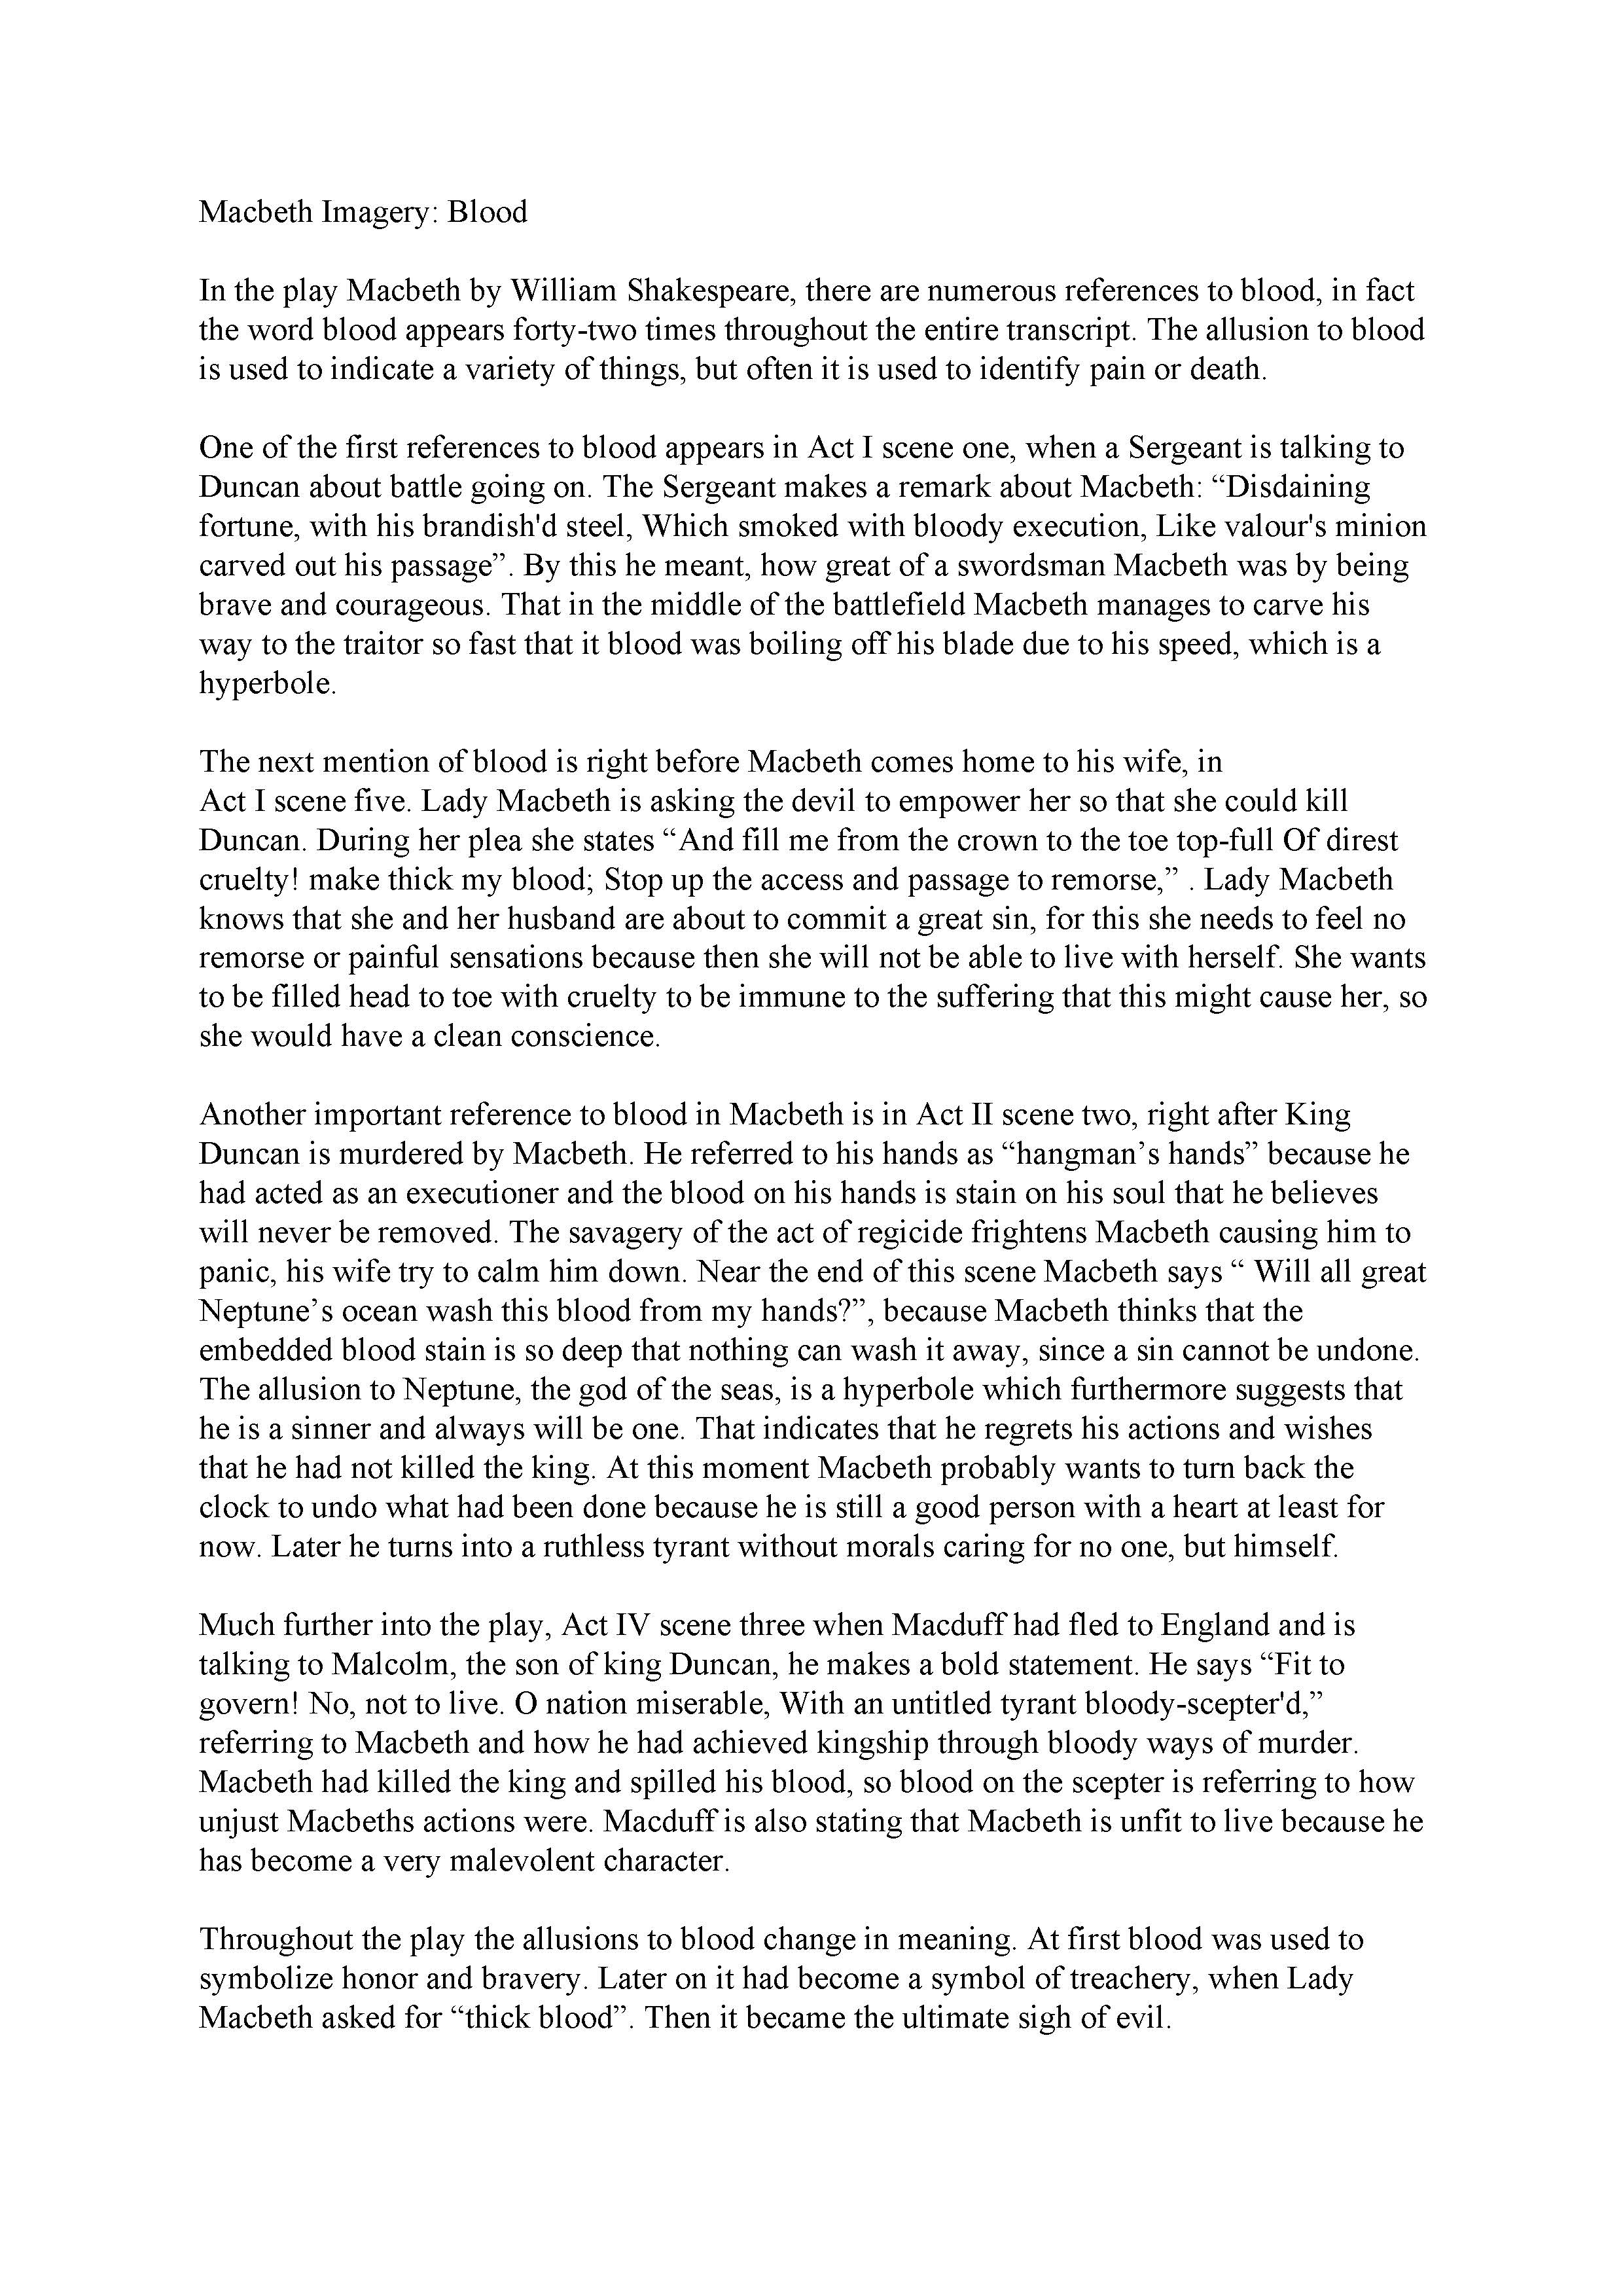 Cover letter essay examples